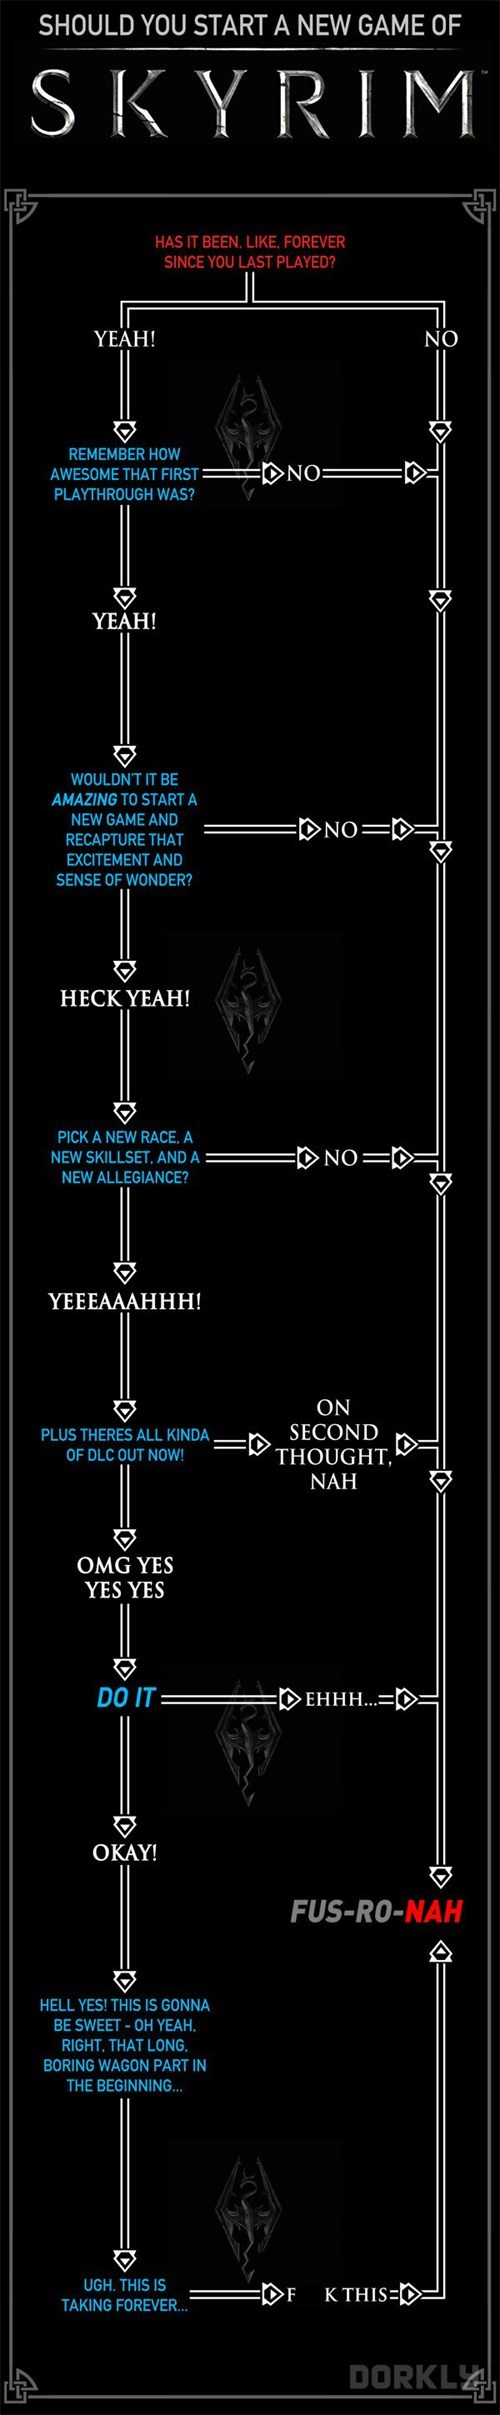 dorkly,charts,flowcharts,video games,Skyrim